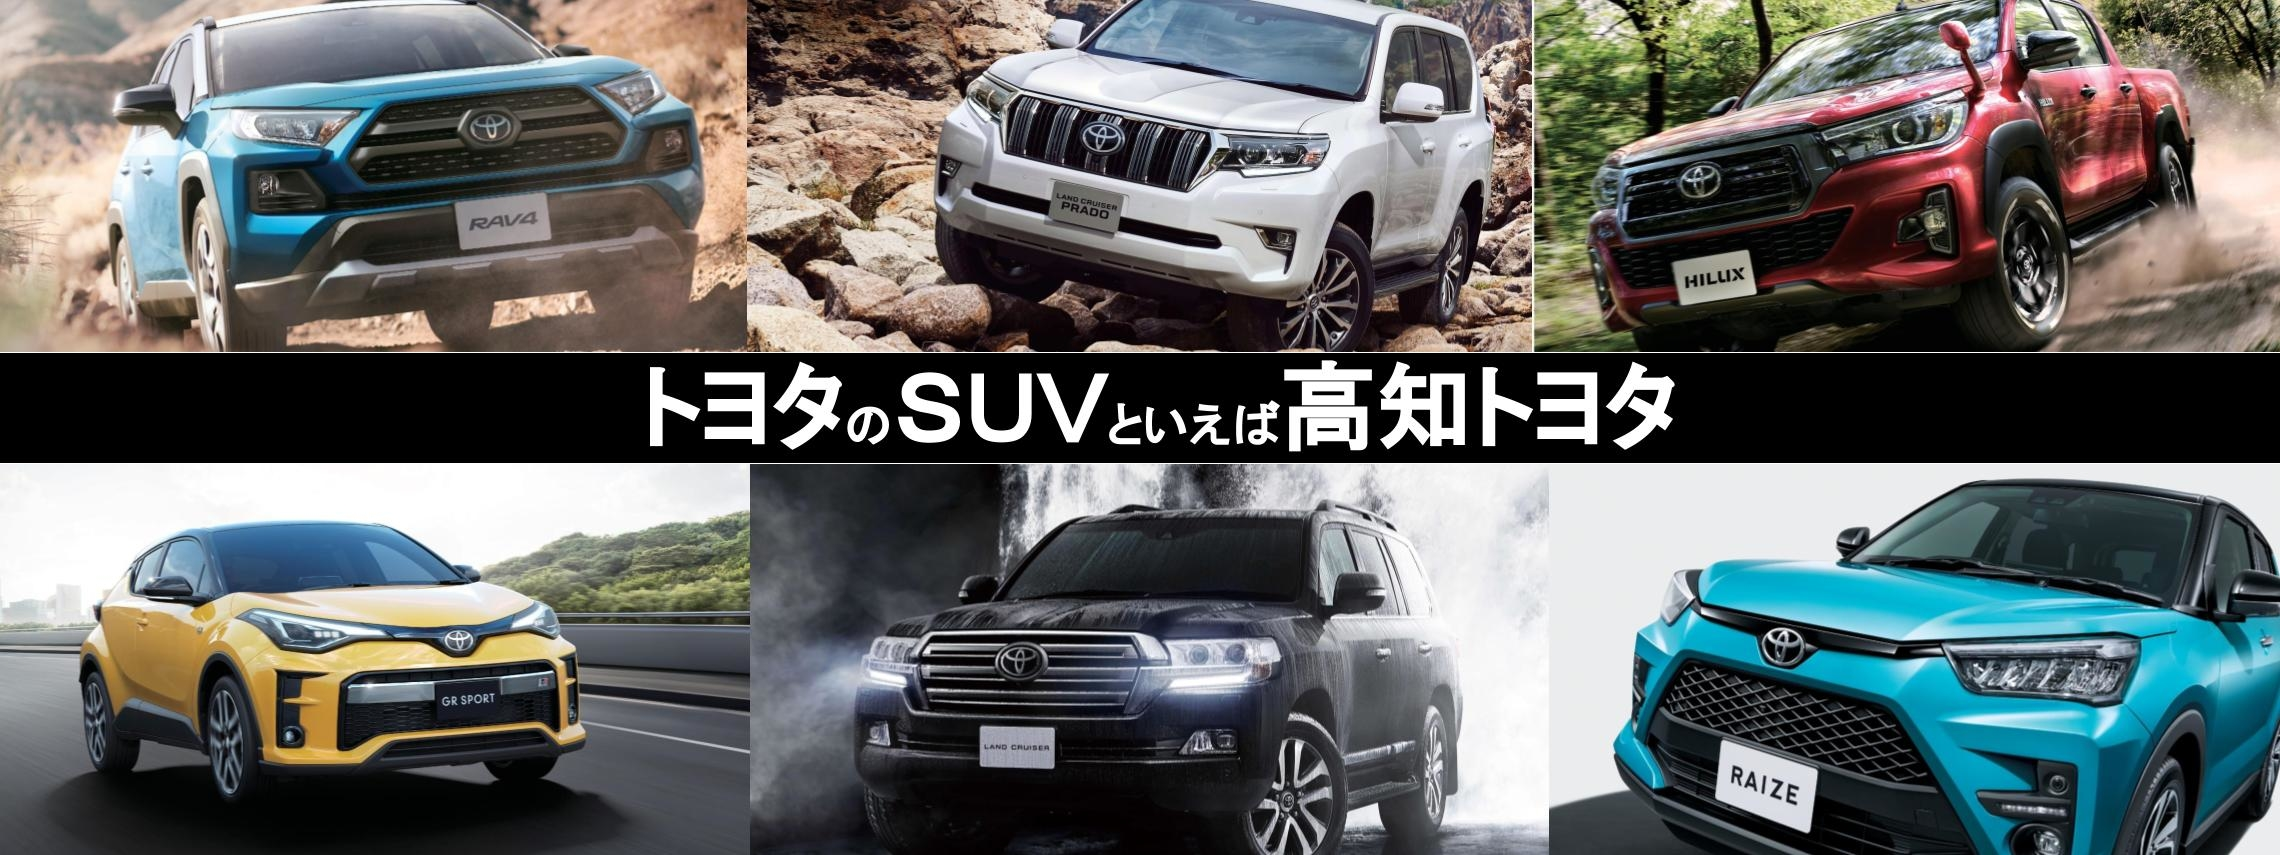 kochitoyota_suv_202004_1_2280